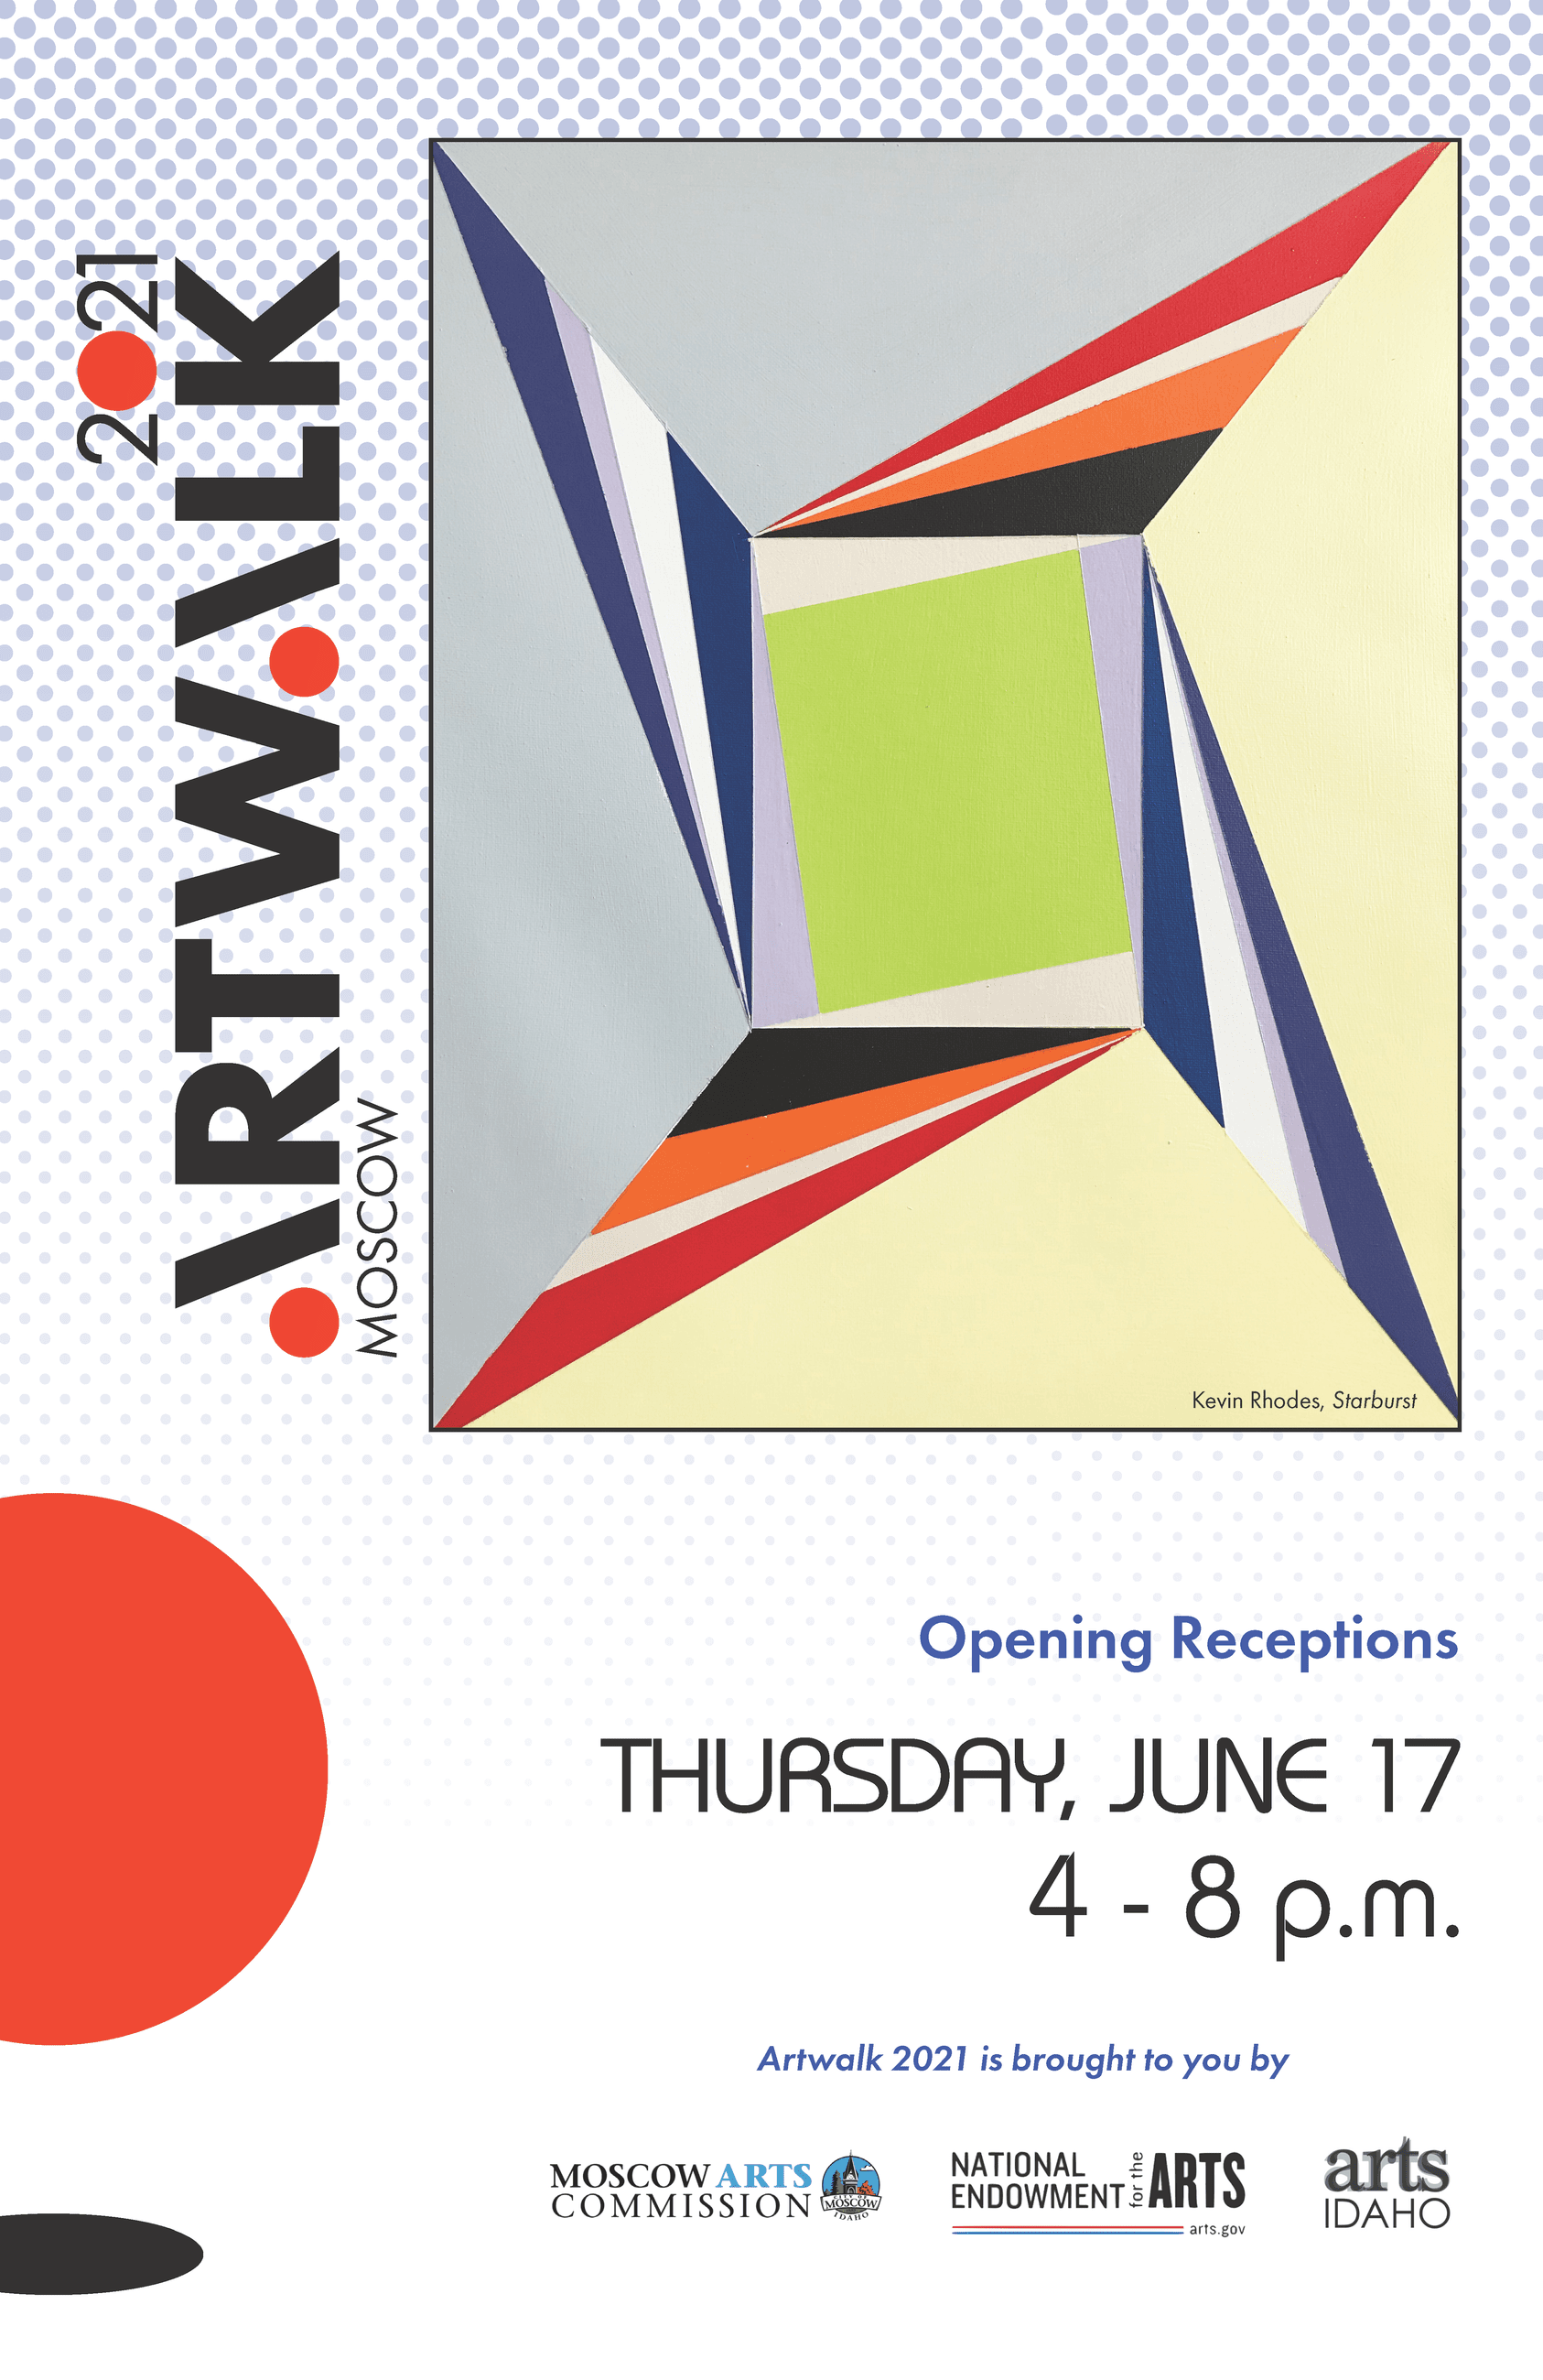 2021 Artwalk Poster featuring colorful geometric shapes